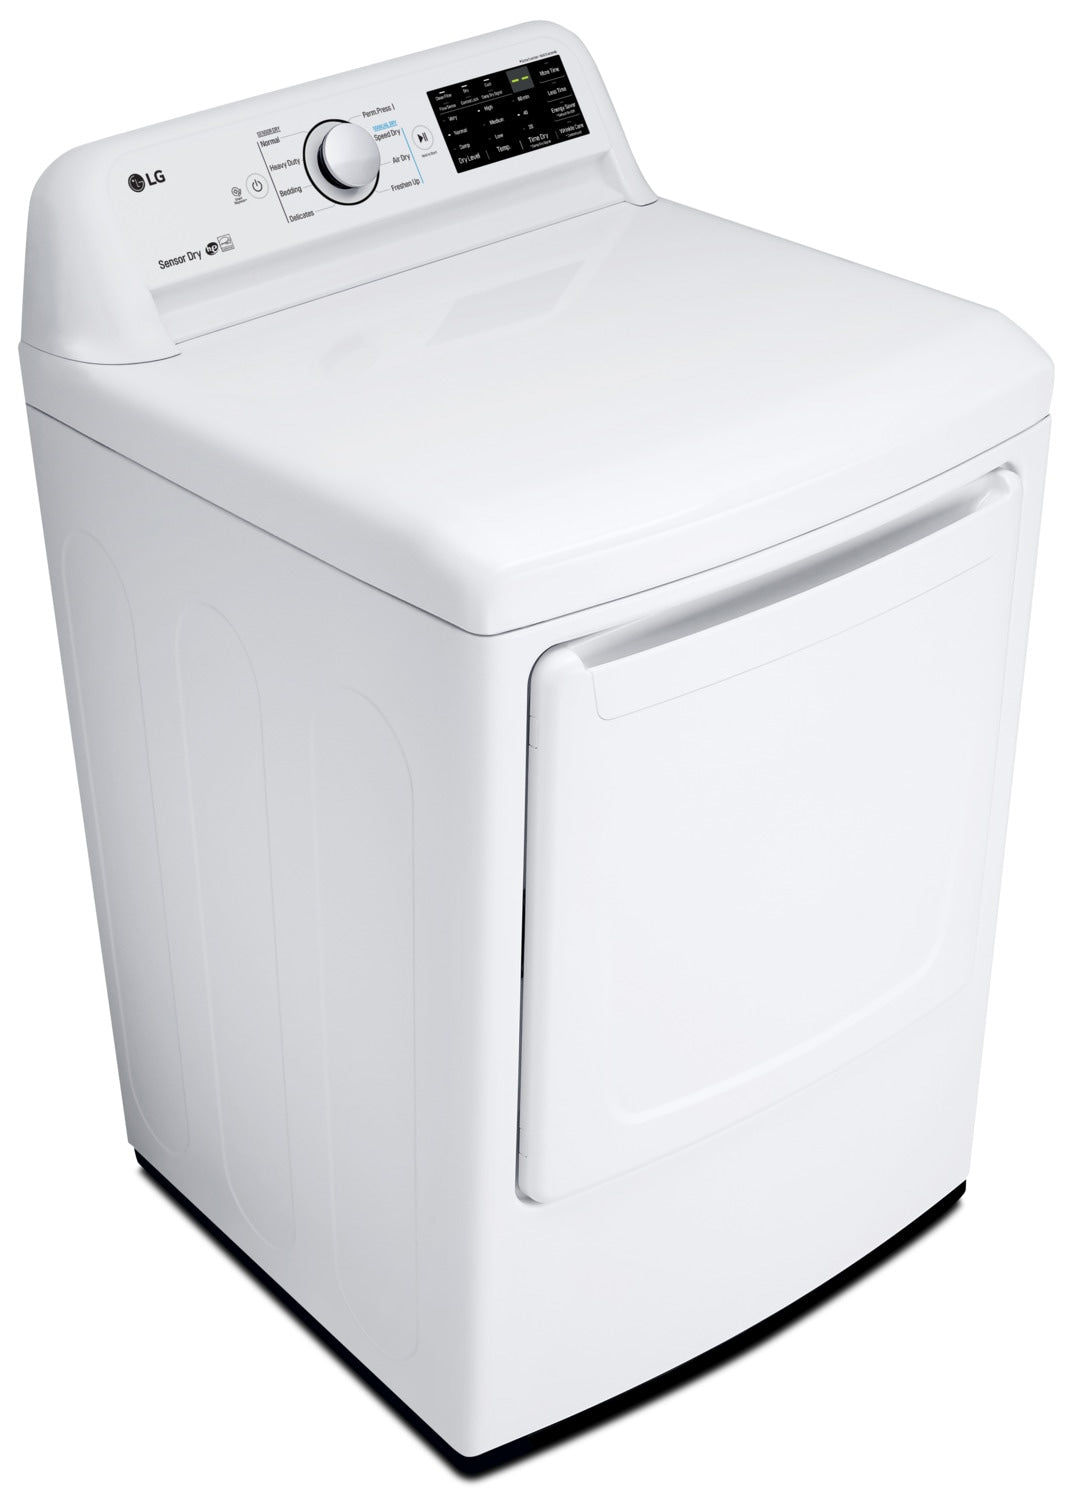 LG 7 3 Cu  Ft  Electric Dryer with Sensor Dryer Technology DLE7100W – White